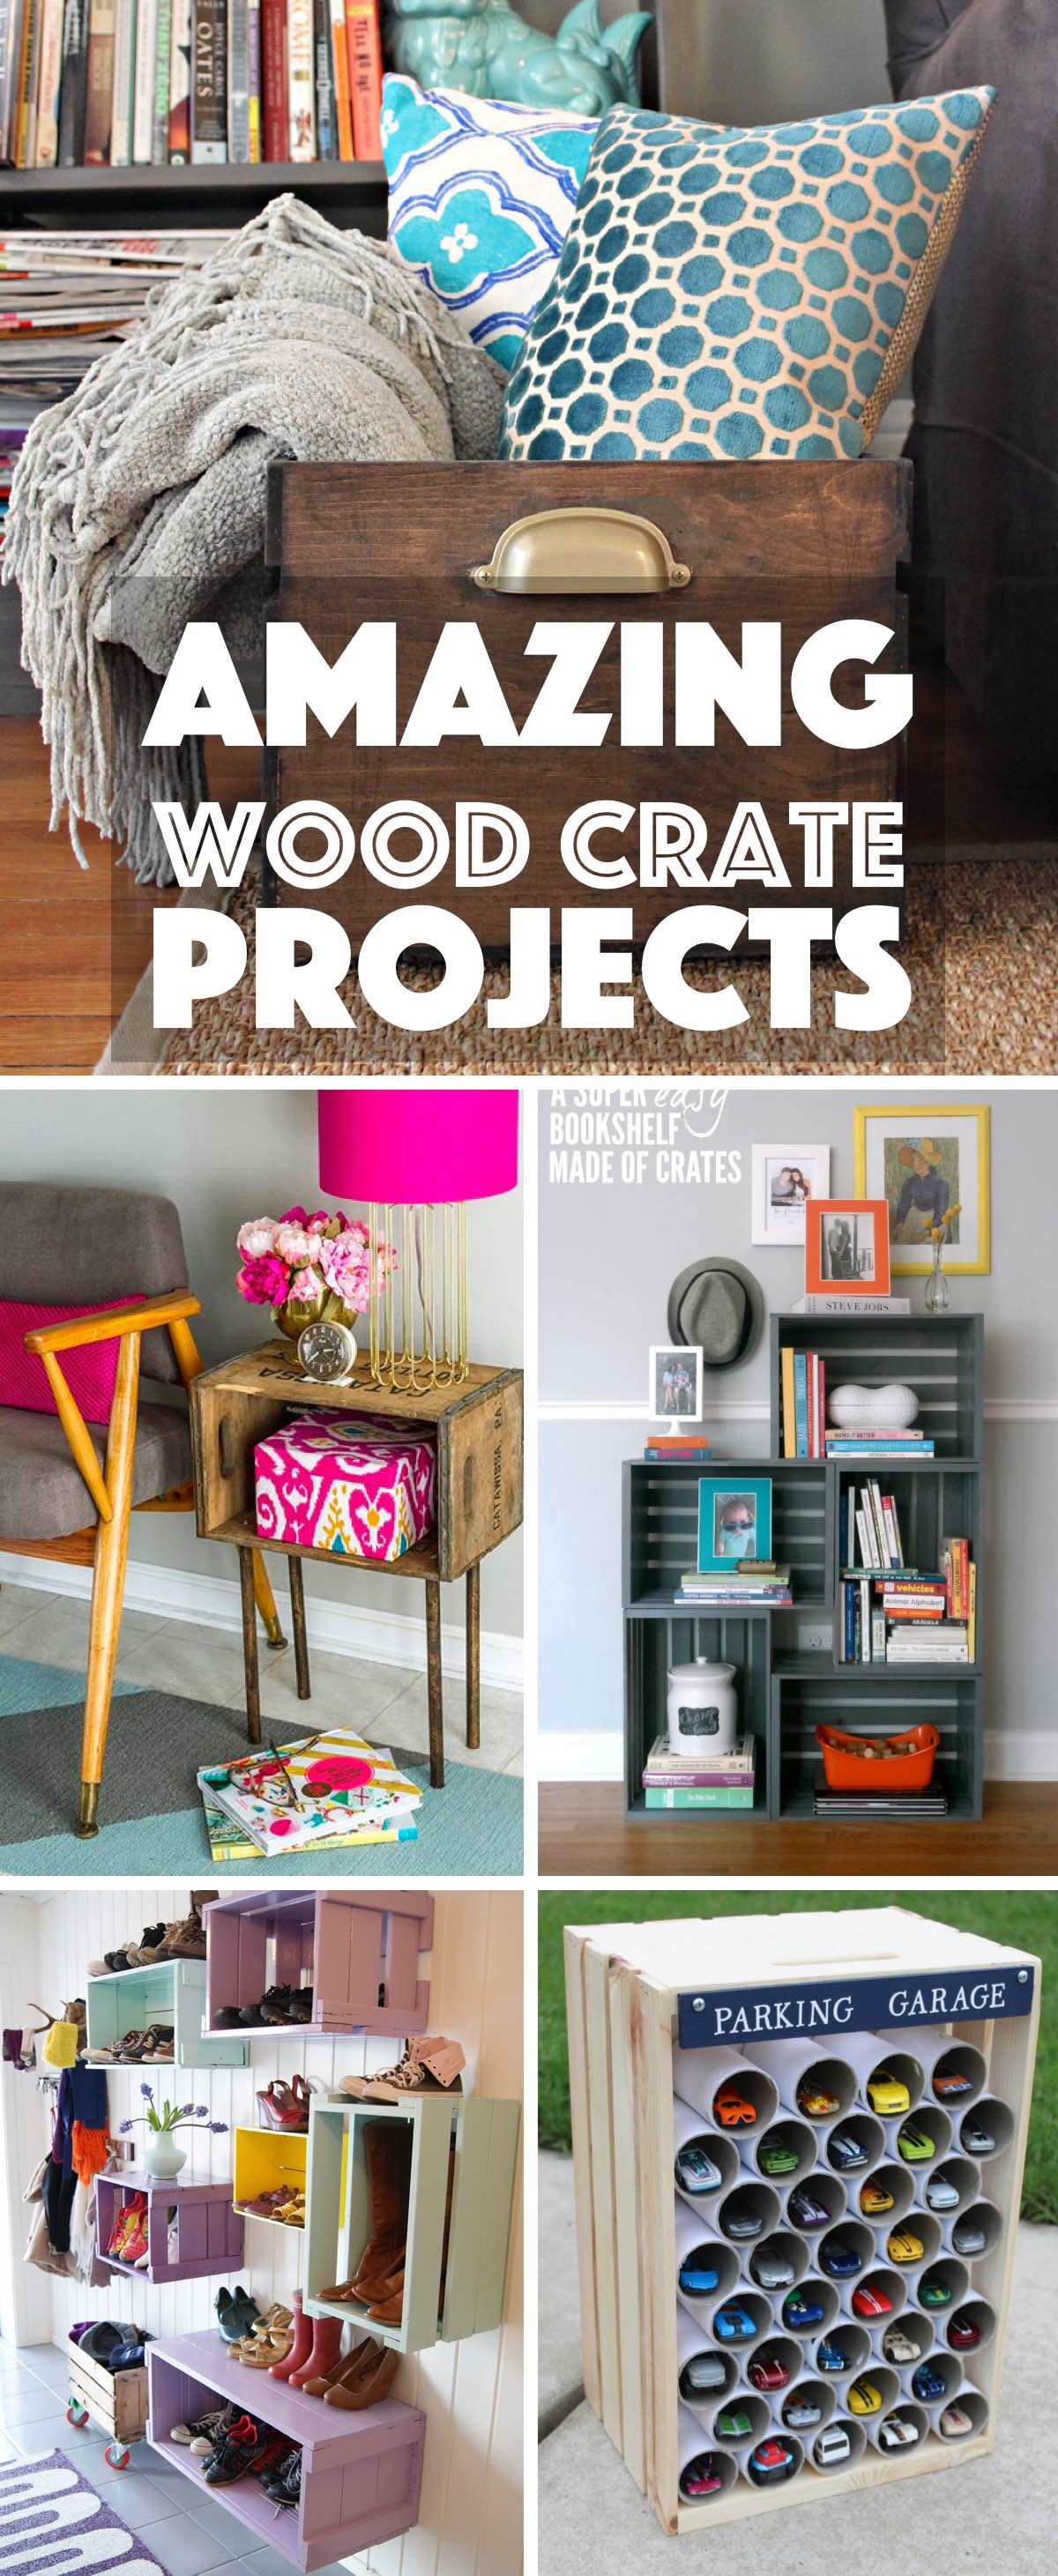 Amazing Wood Crate Projects That Range From Decor To Storage And More